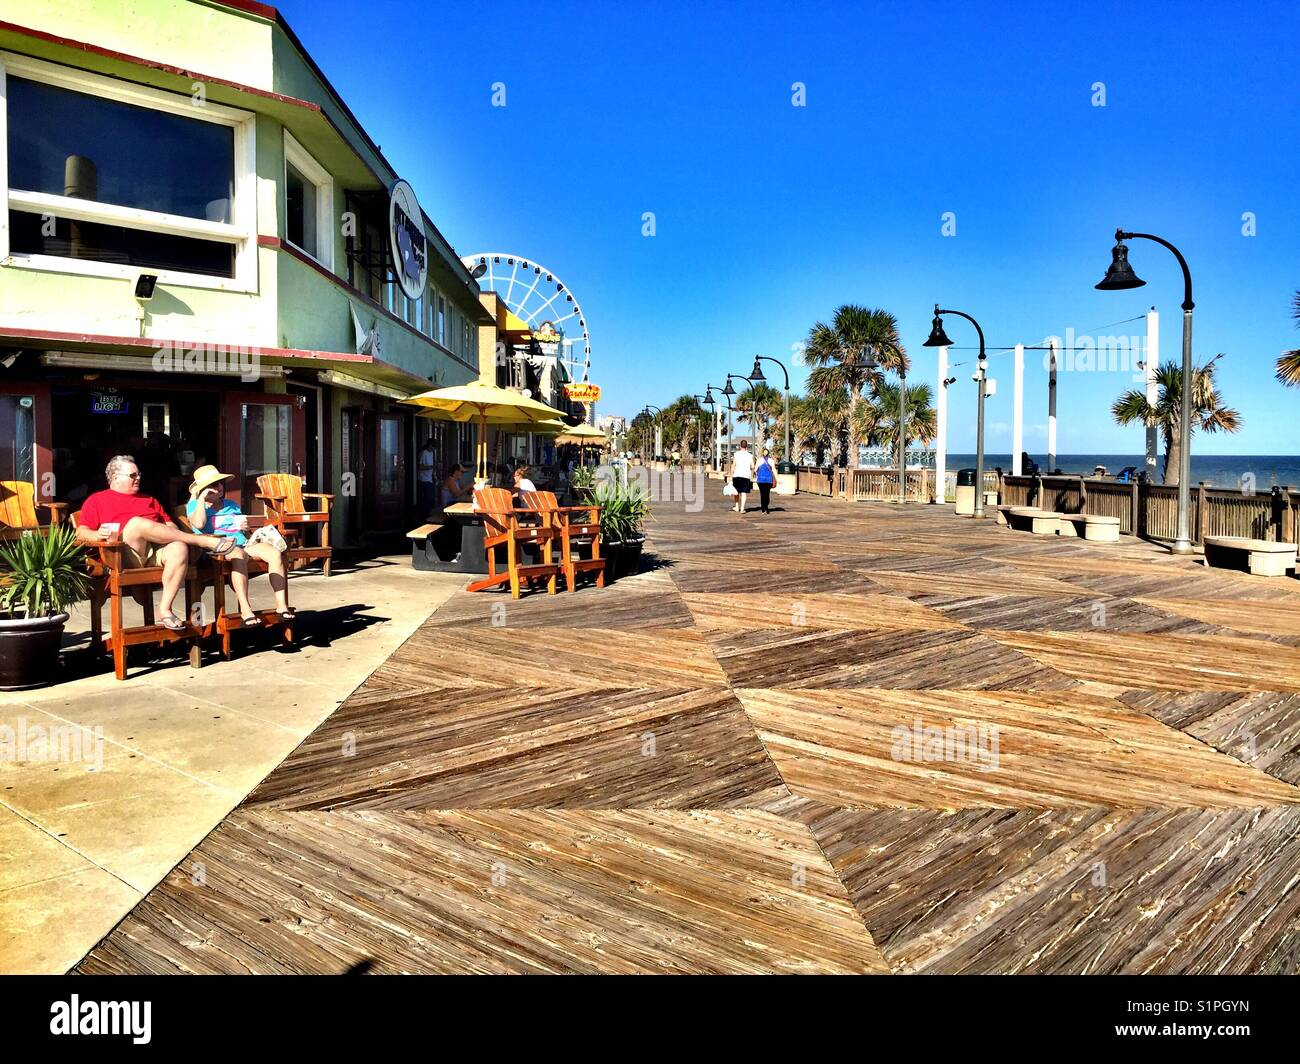 Oceanfront boardwalk and shops, Myrtle Beach, South Carolina Stock Photo